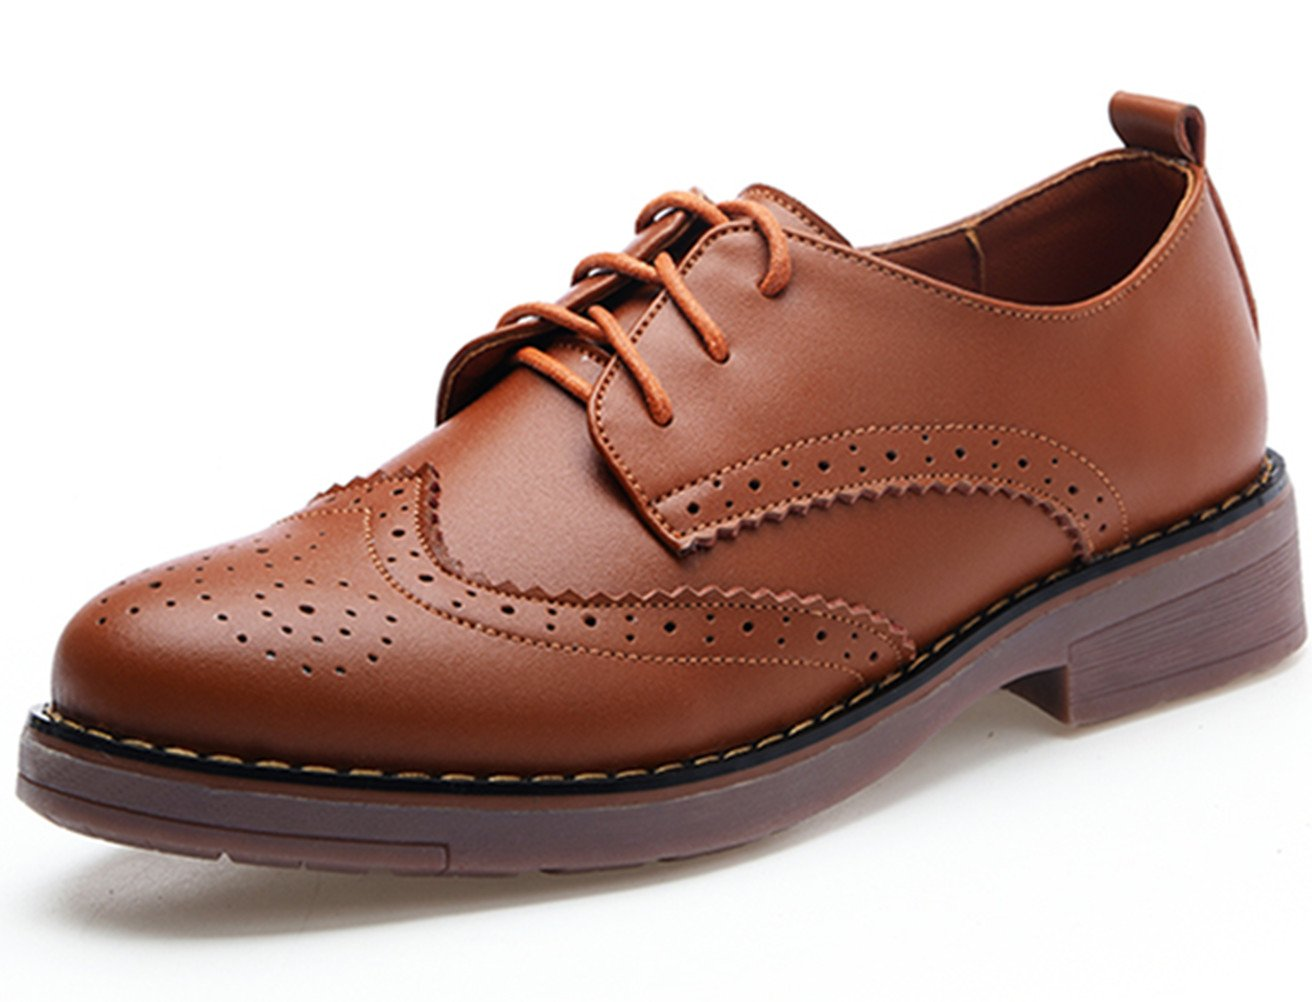 DADAWEN Women's Perforated Lace-up Wingtip Leather Flat Oxfords Vintage Oxford Shoes Brogues Brown US Size 7/Asia Size 39/24.5cm